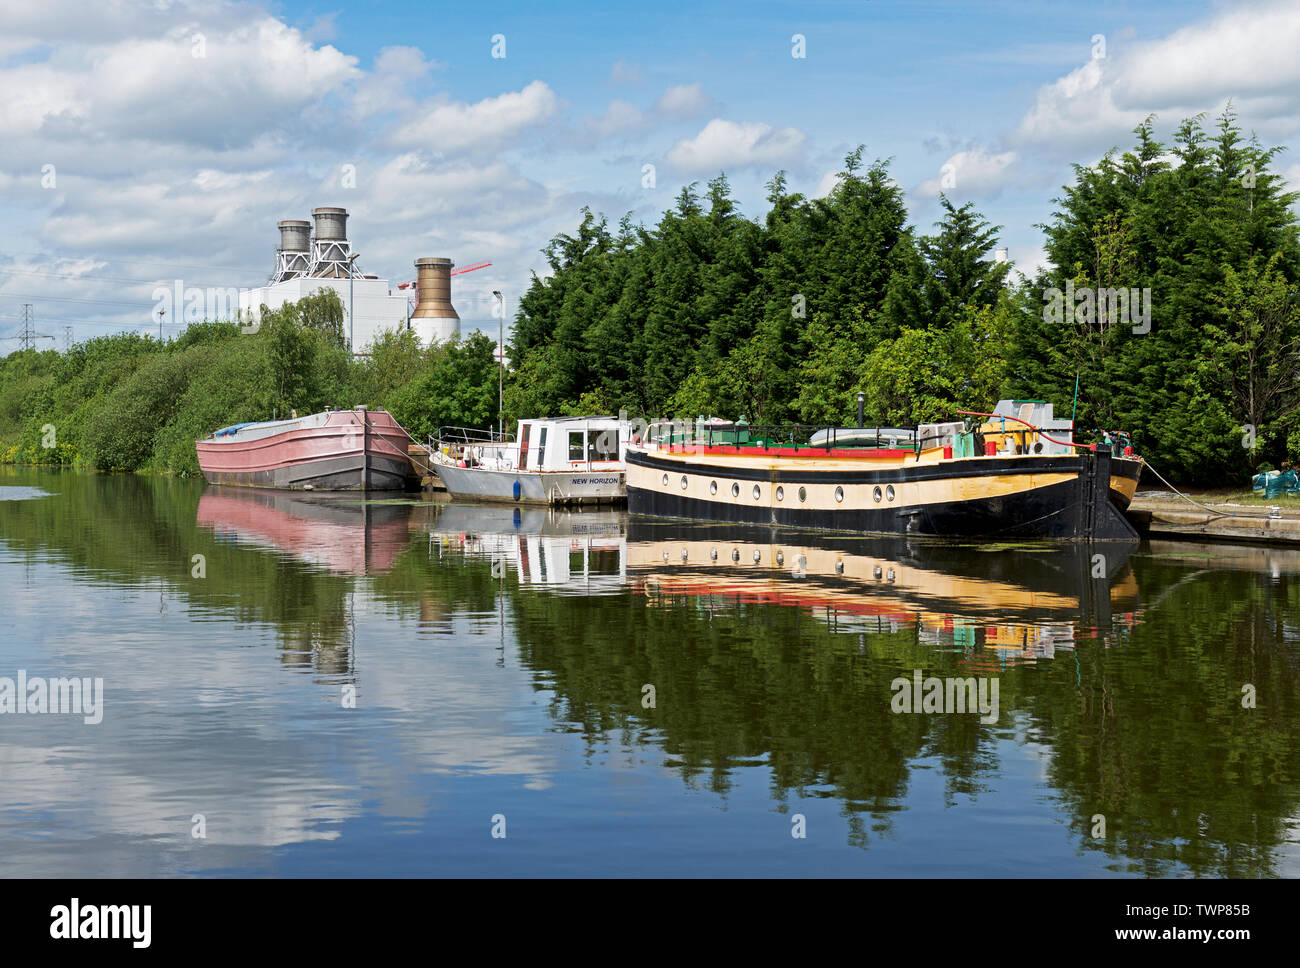 The Stainforth & Keadby Canal, Keadby, North Lincolnshire, England UK - Stock Image